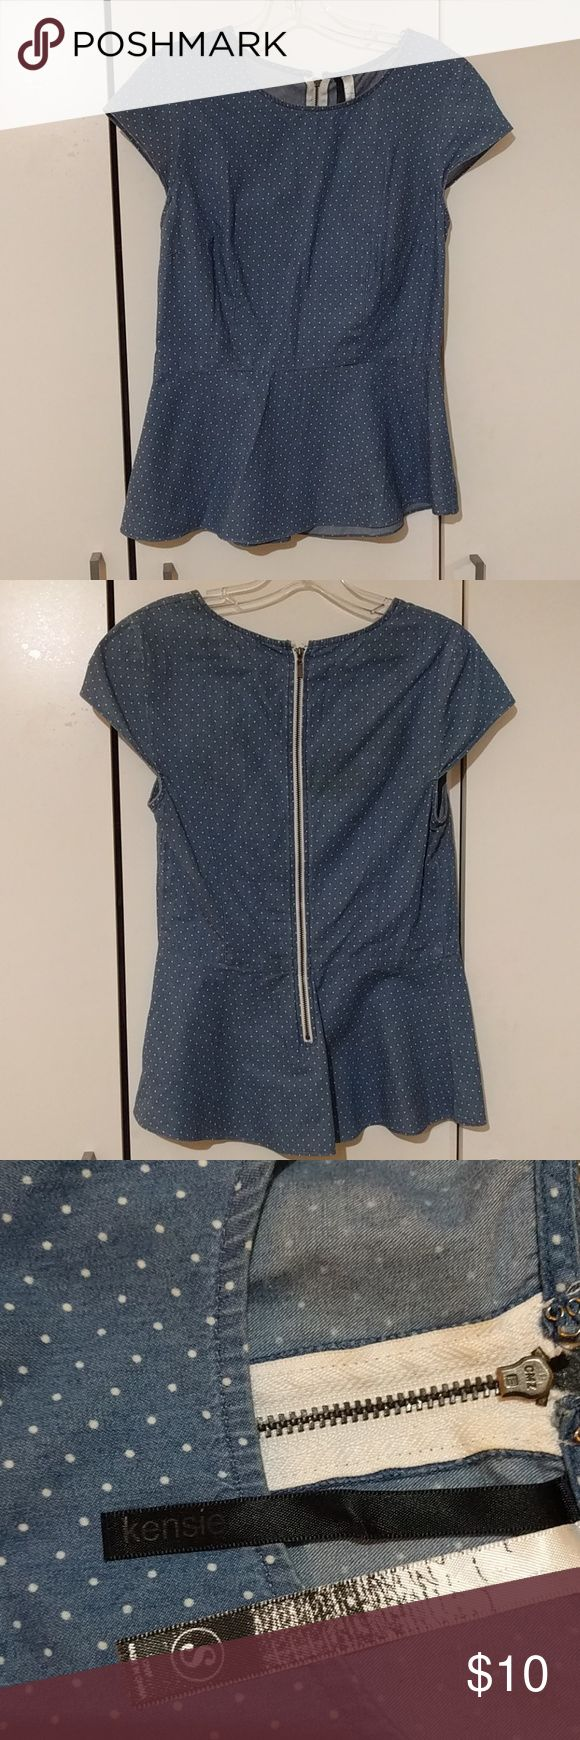 """Kensie Retro Short Sleeve Shirt Very gently used. Kensie retro style, blue polka dot, short sleeve shirt. Size small. Zipper back. 100% cotton. Measures 15"""" armpit to armpit, 23"""" from top of back collar to bottom of shirt. Kensie Tops Tees - Short Sleeve"""